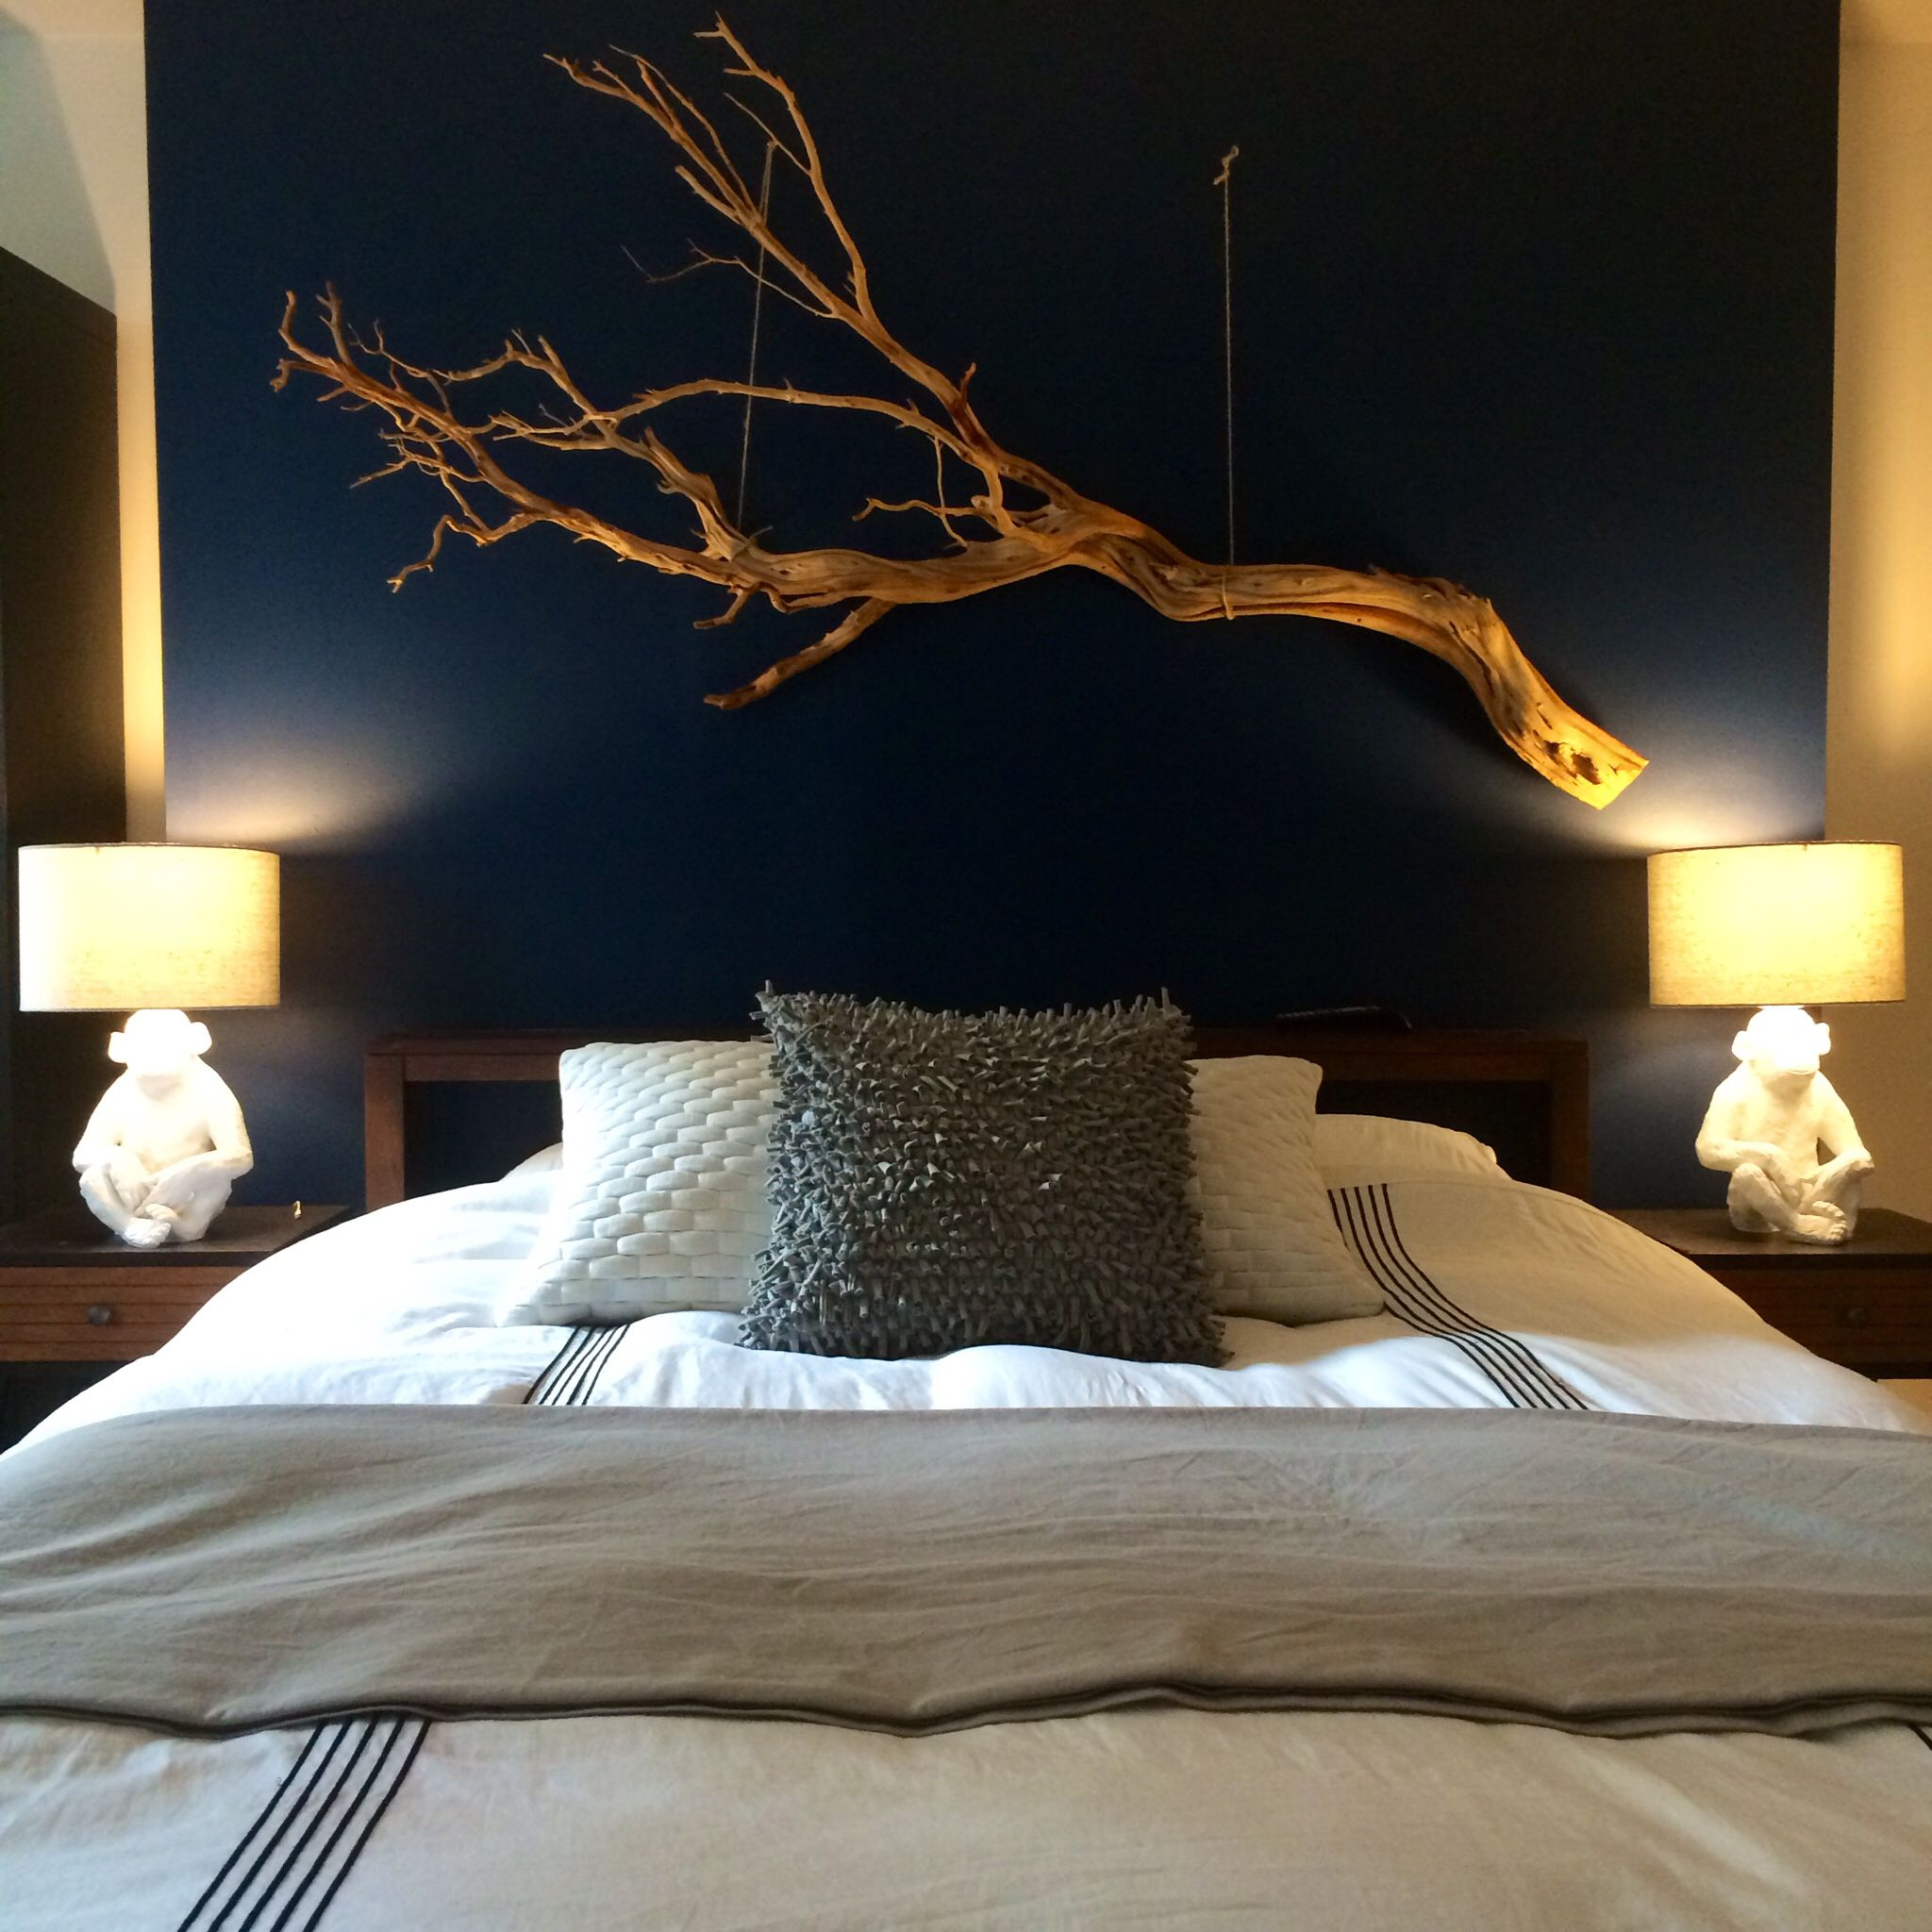 Driftwood Art Over Bed Renos Bedroom Decor Art Over